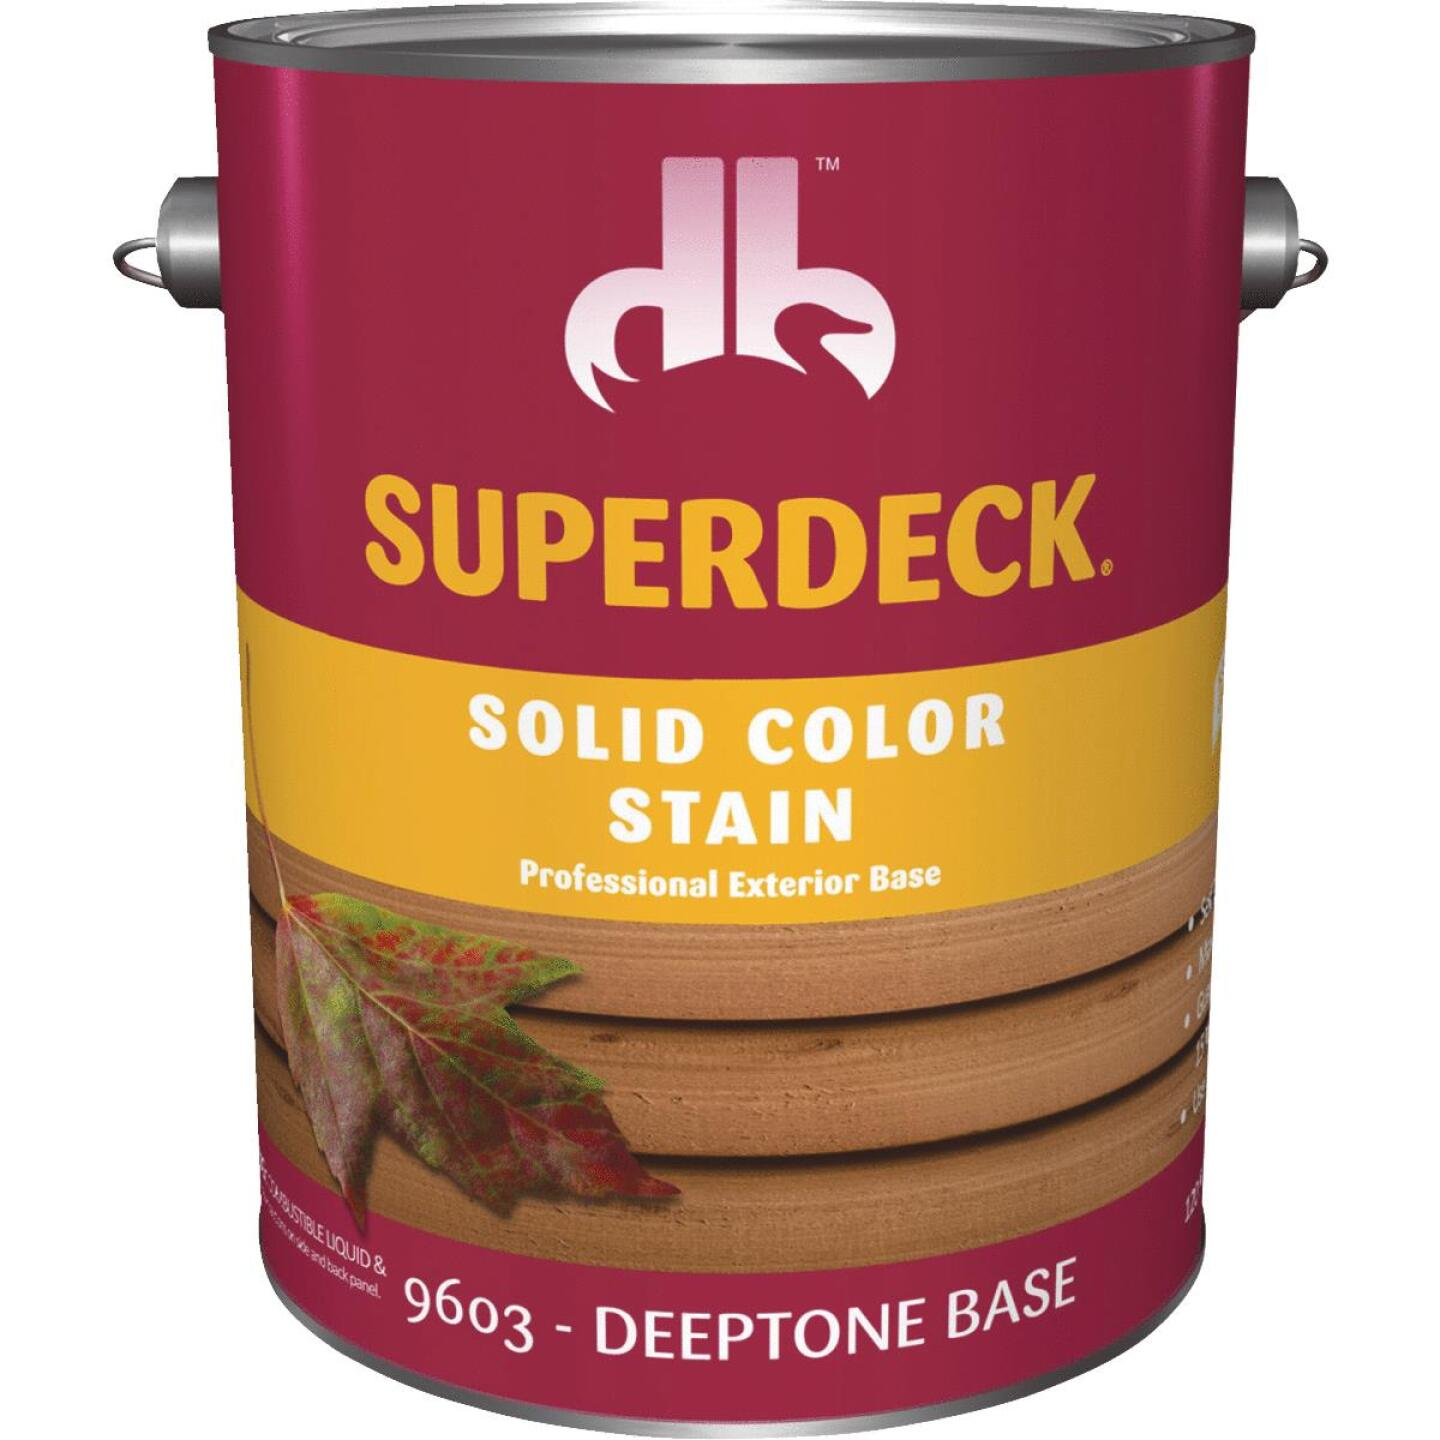 Duckback SUPERDECK Self Priming Solid Color Stain, Deeptone Base, 1 Gal Image 1